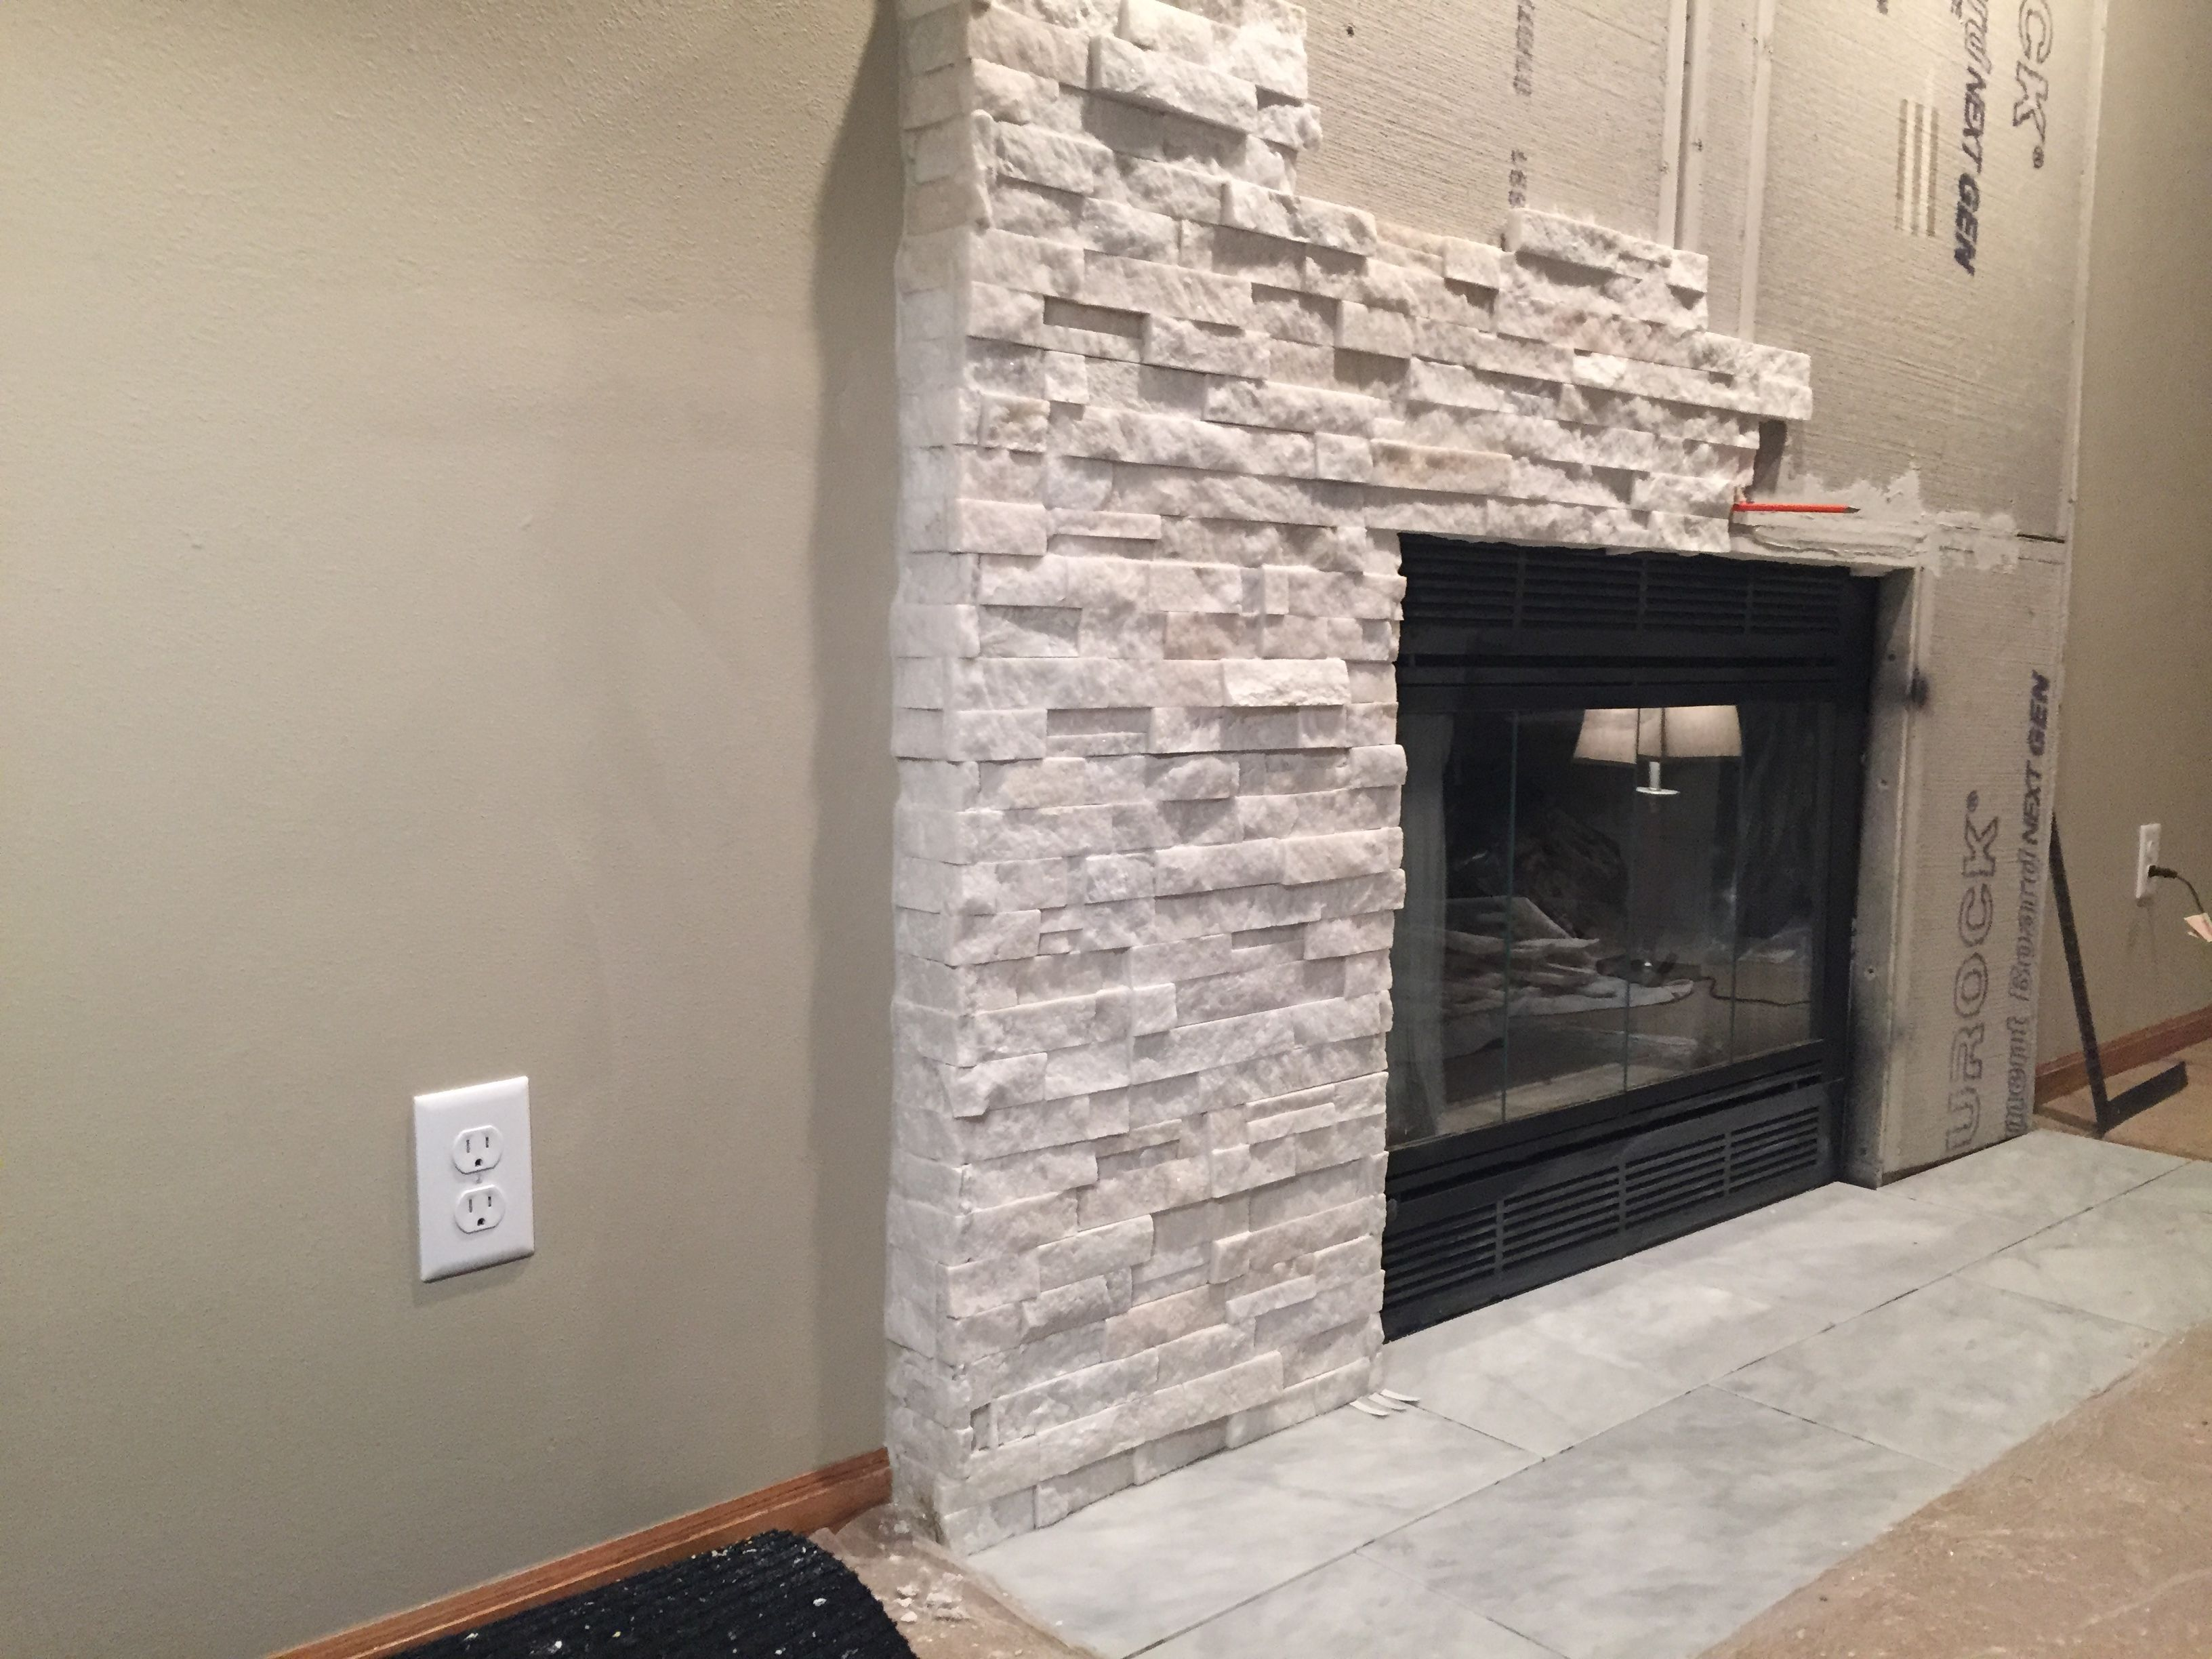 Adding A Fireplace Adding A Fireplace To A House Artificial Fireplace Best Fireplace Insert B White Stone Fireplaces Stone Fireplace Surround Fireplace Remodel